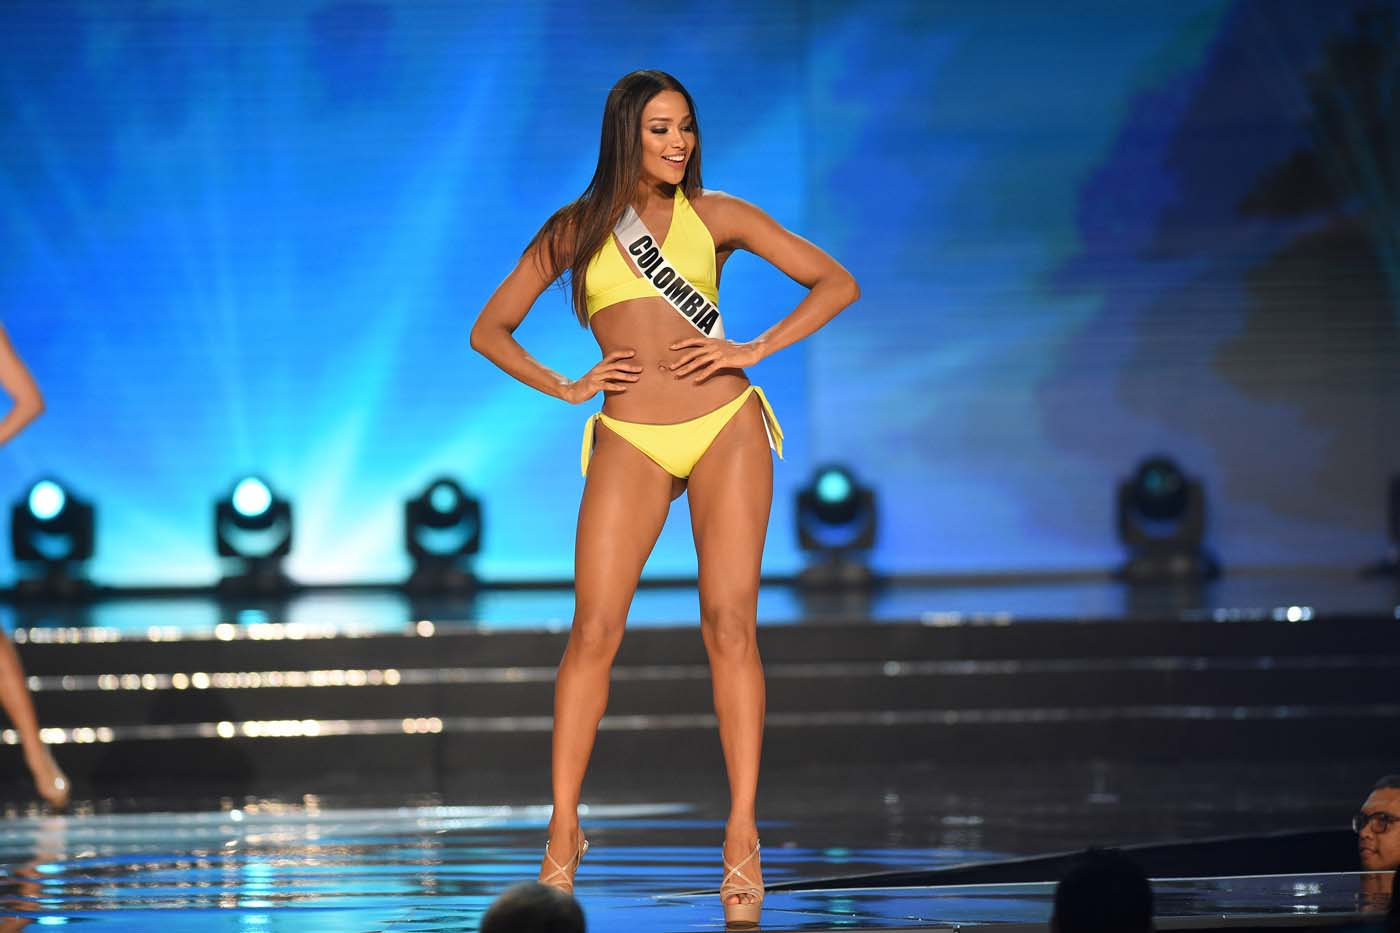 This photo taken on January 26, 2017 shows Miss Universe contestant Andrea Tovar of Colombia in her siwmsuit during the preliminary competition of the Miss Universe pageant at the Mall of Asia arena in Manila. / AFP PHOTO / TED ALJIBE